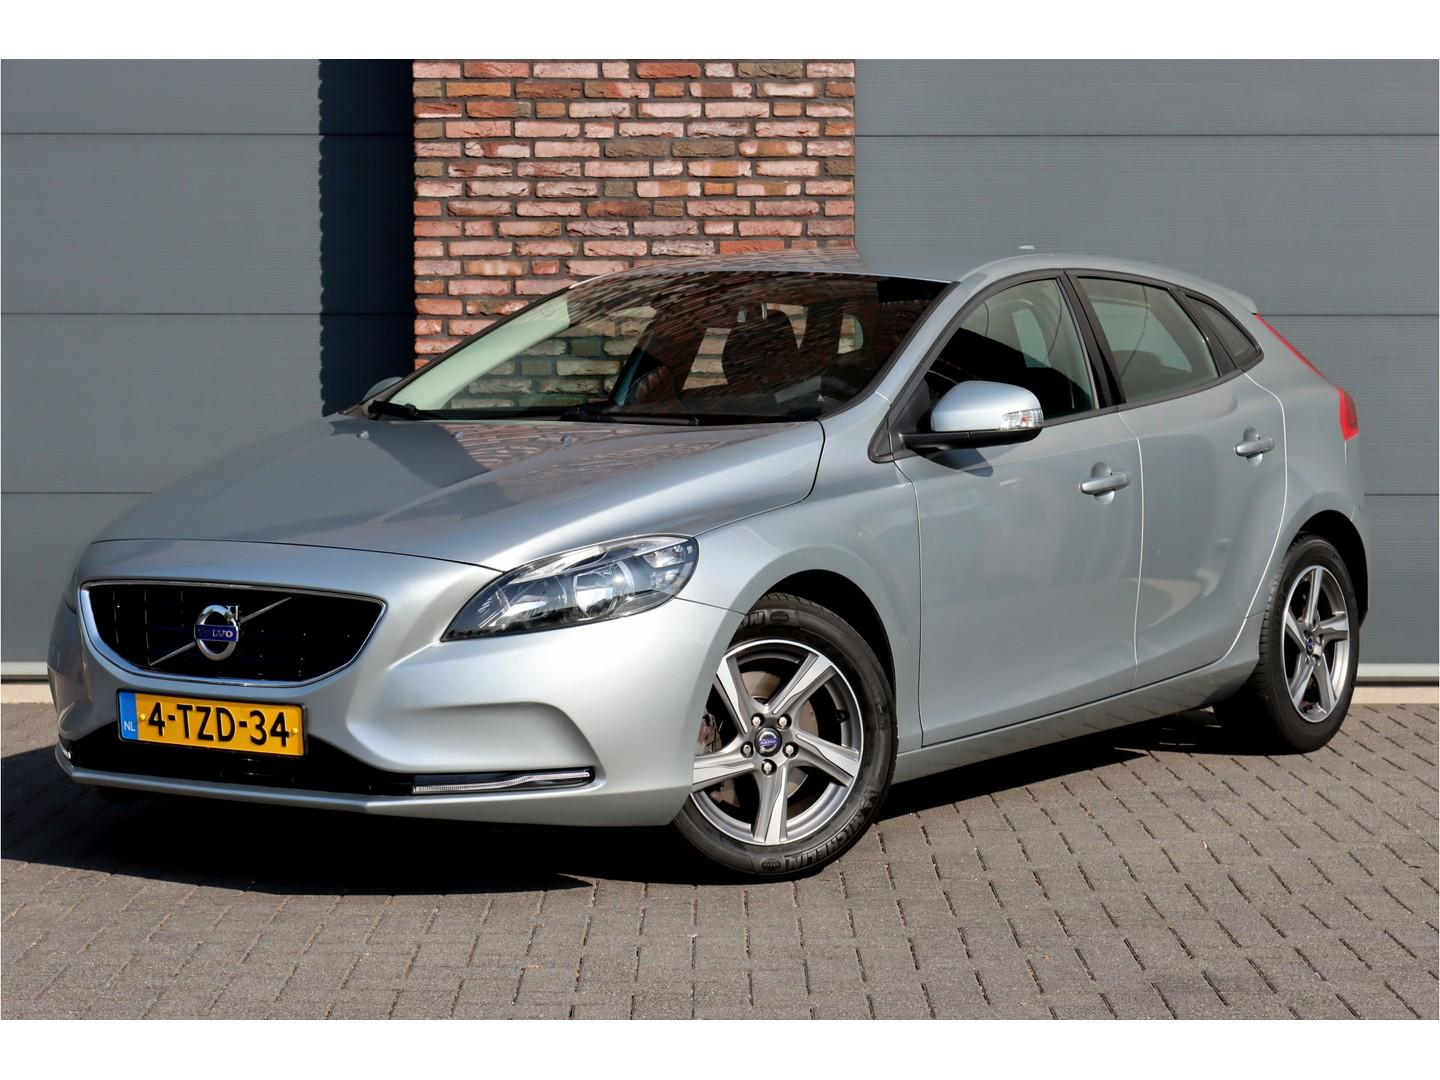 Volvo V40 1.6 t2 kinetic, navigatie sensus connect, high perf. sound, bluetooth, dstc, parkeersensoren, cruisecontrol, aut. airco, etc.